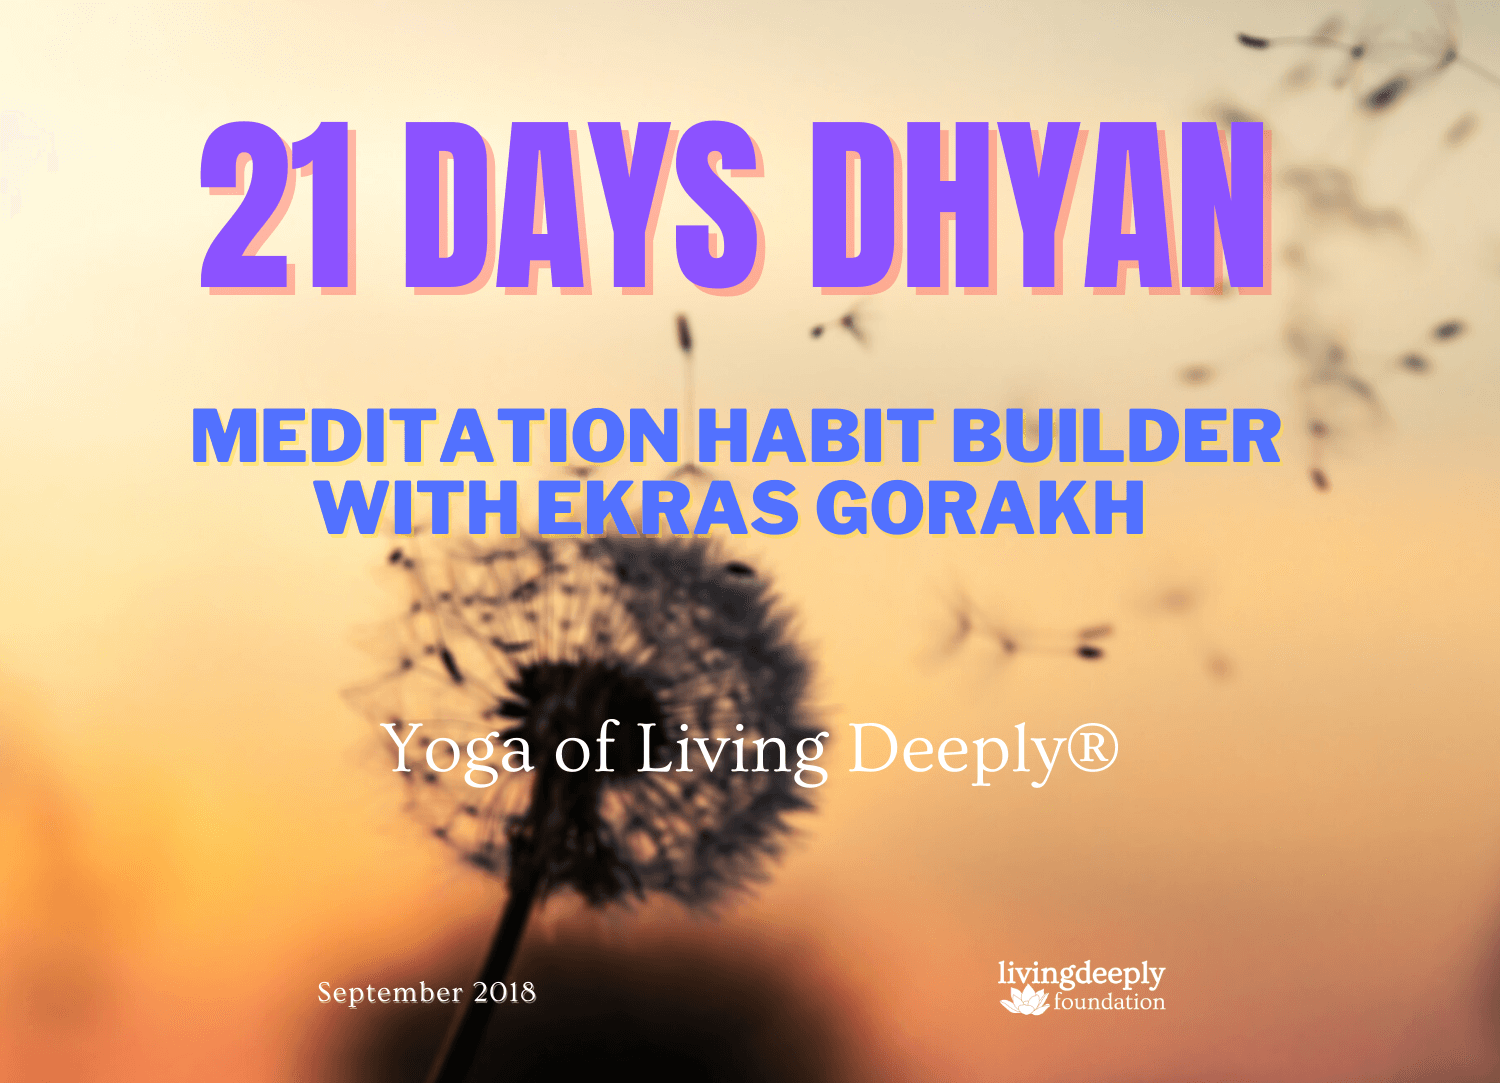 21 Days Dhyan